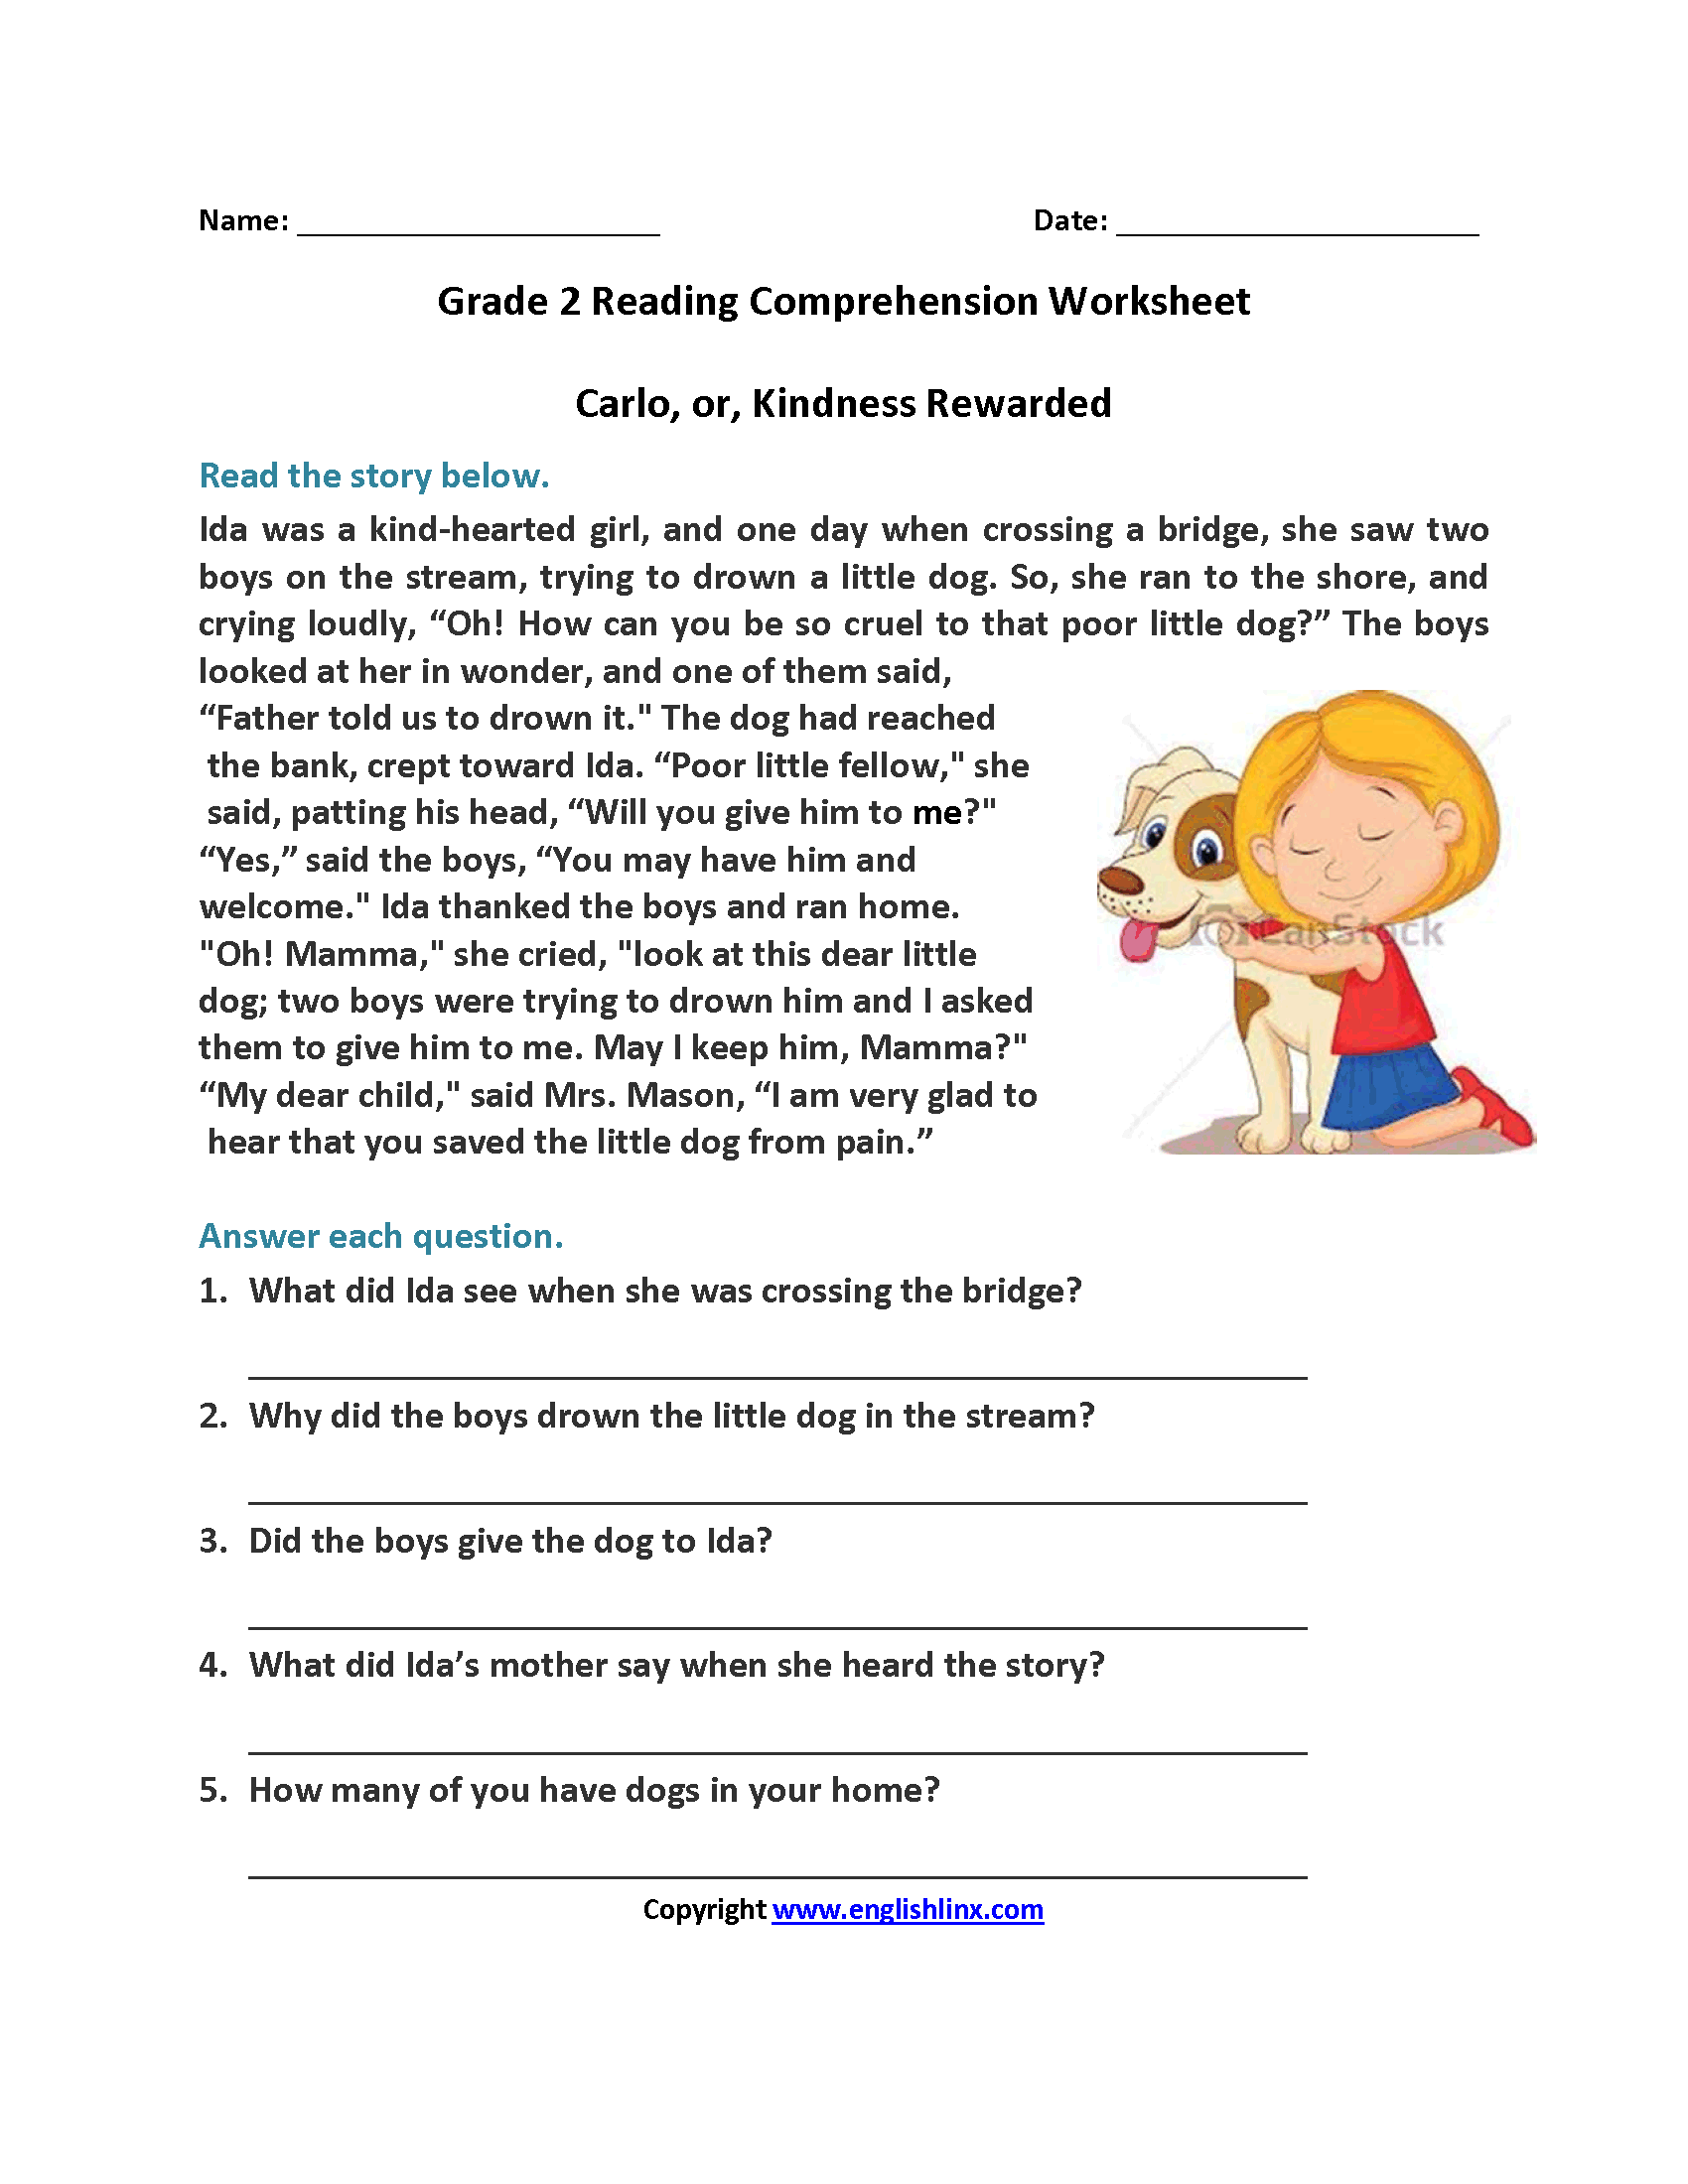 Worksheets Second Grade Reading Comprehension Printable Worksheets carlo or kindness rewarded second grade reading worksheets worksheets